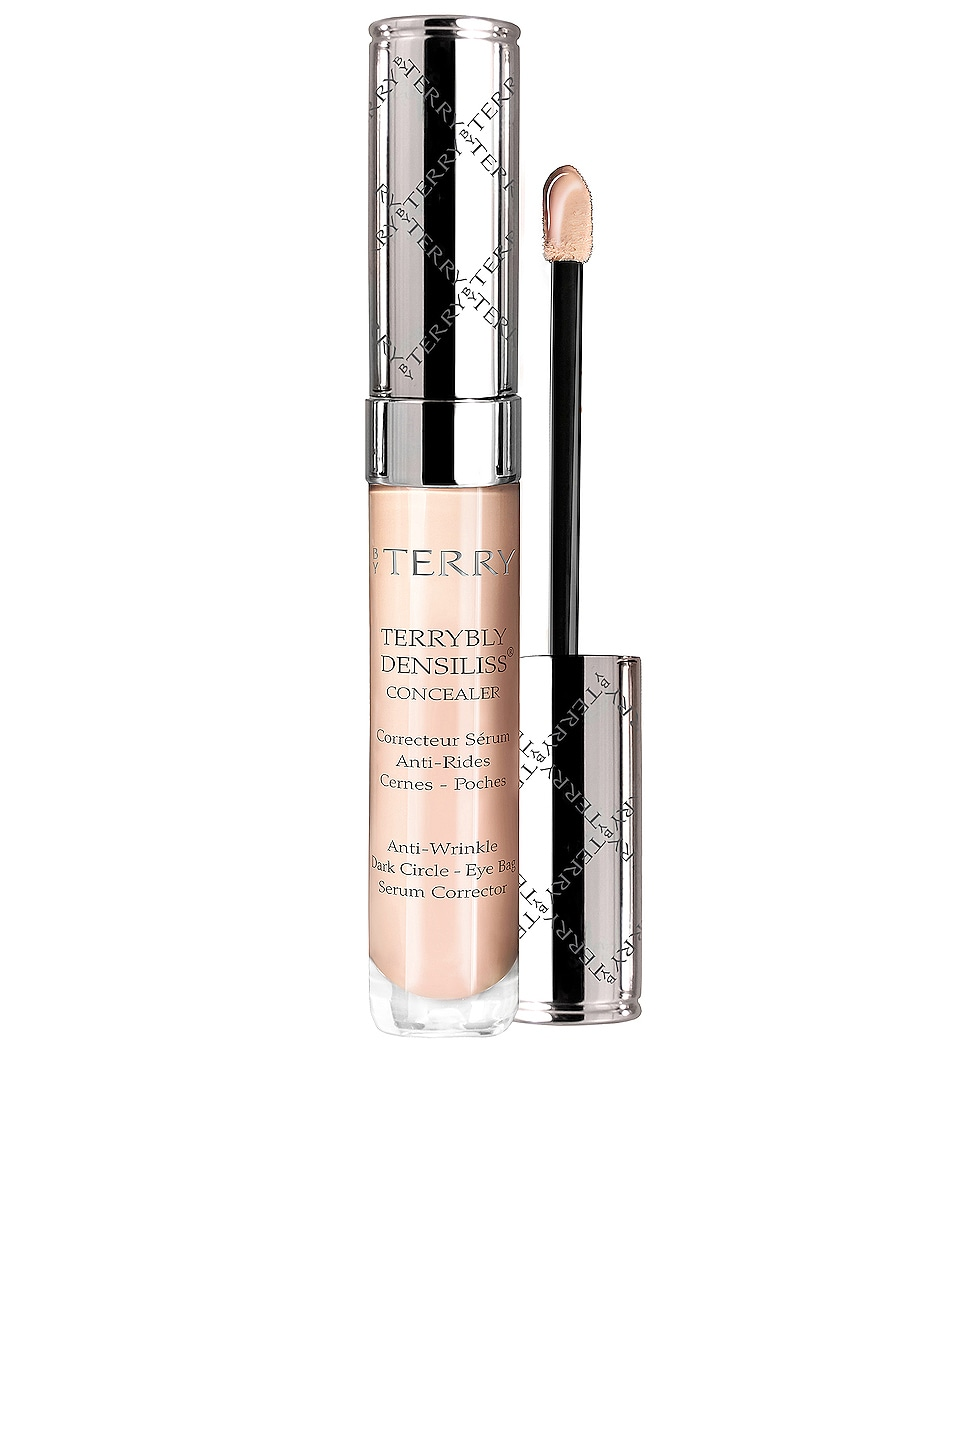 By Terry Terrybly Densiliss Concealer in Natural Beige